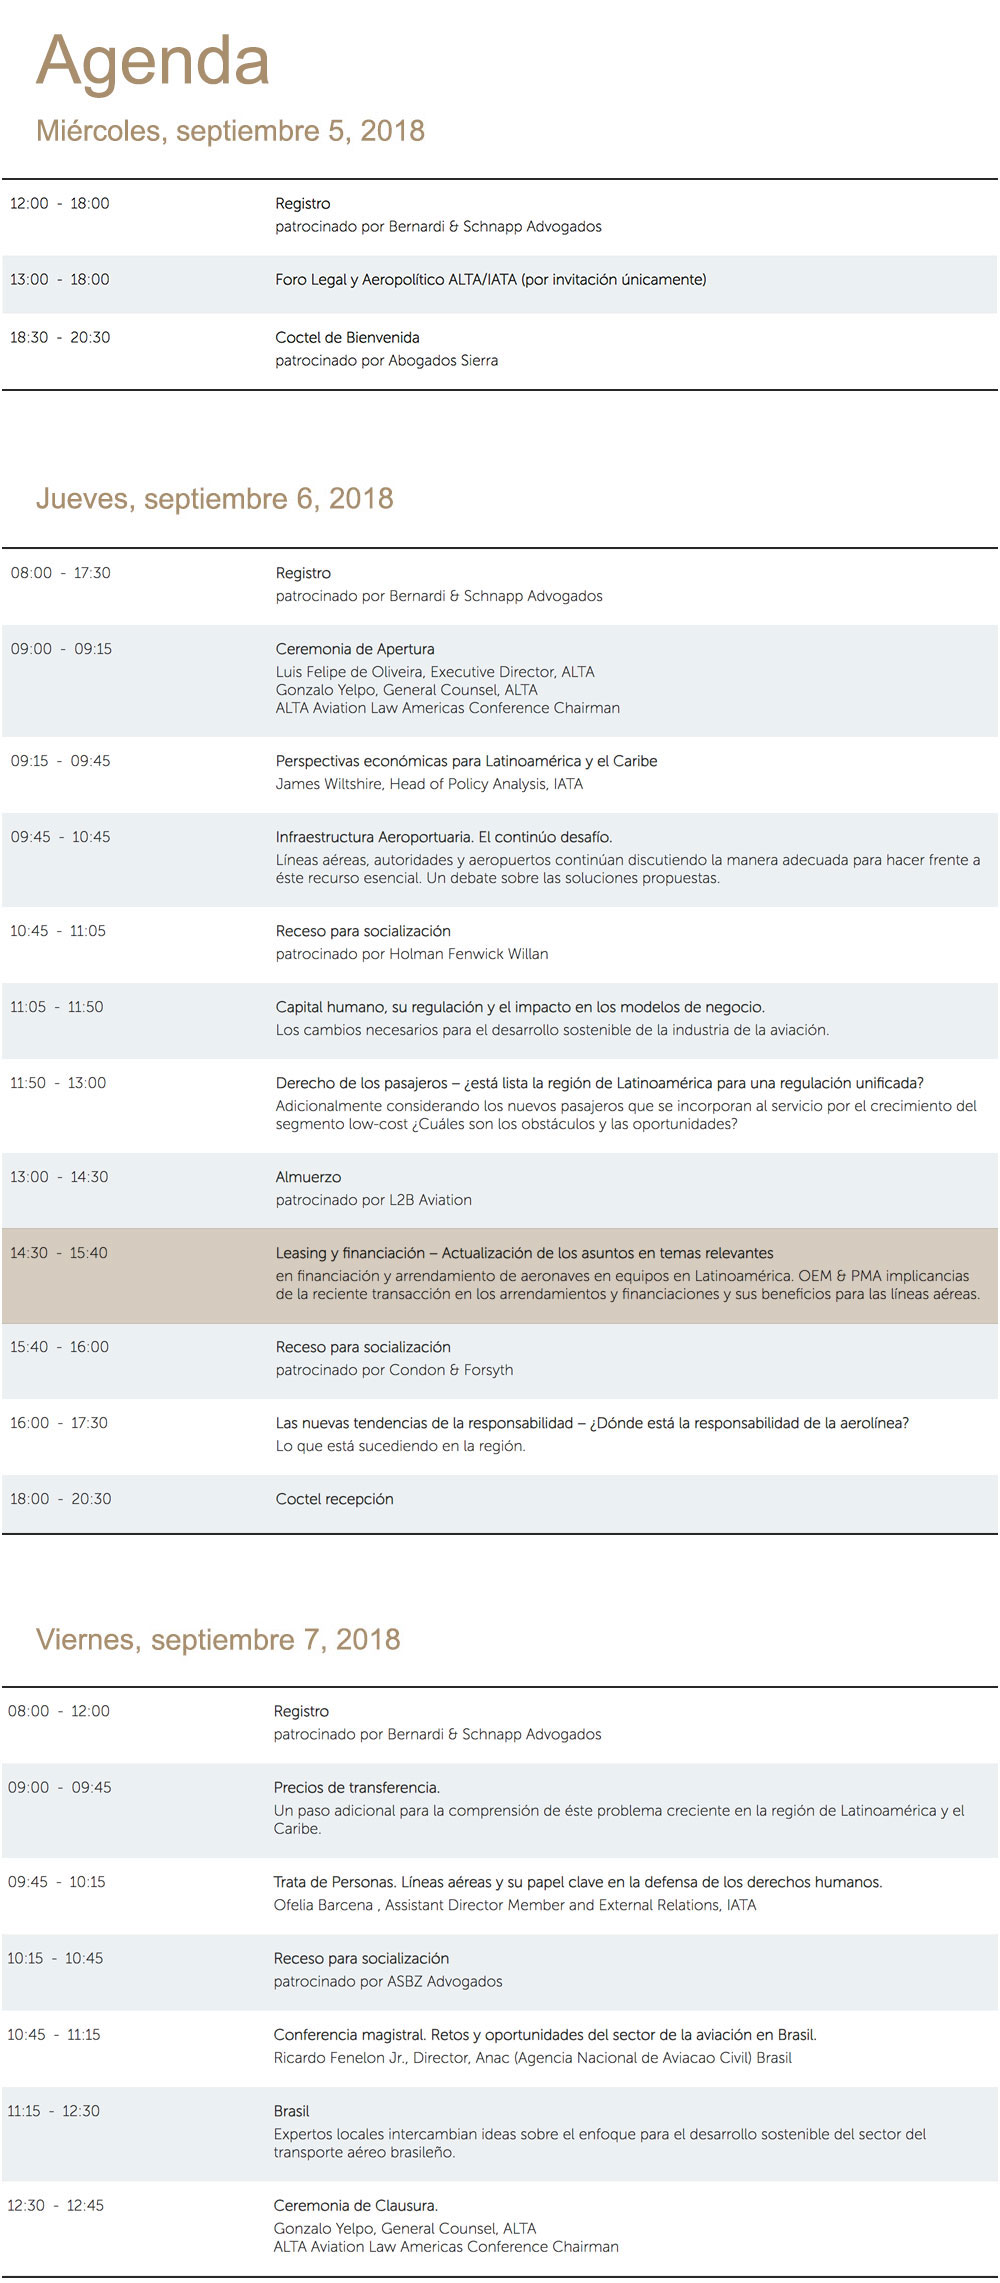 Agenda ALTA (Aviation Law Americas) septiembre 5-7 en Miami(Florida)